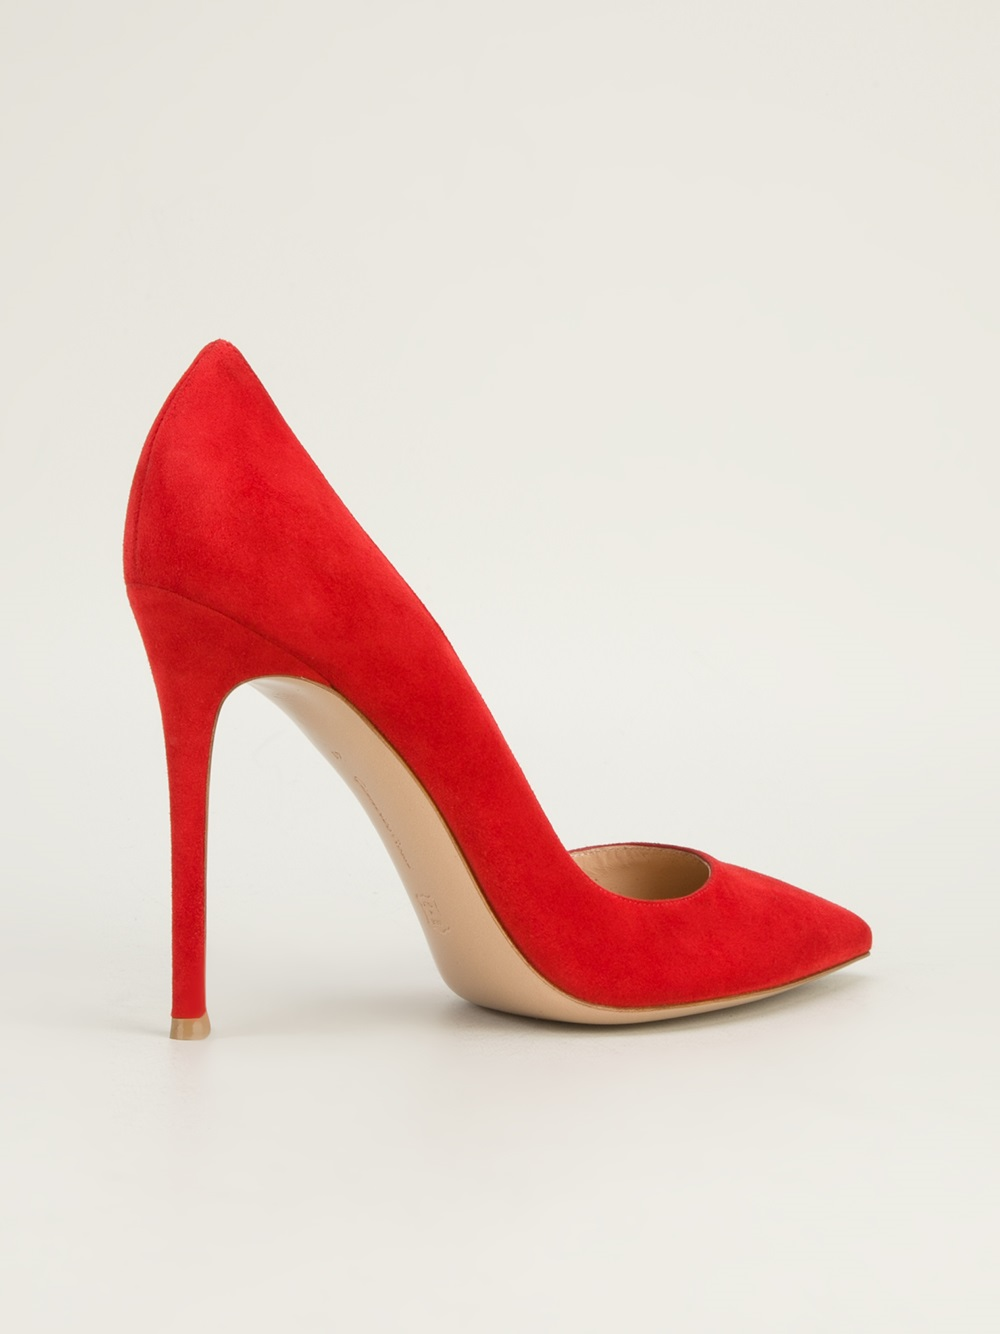 Lyst Gianvito Rossi Pointed Toe Pump In Red